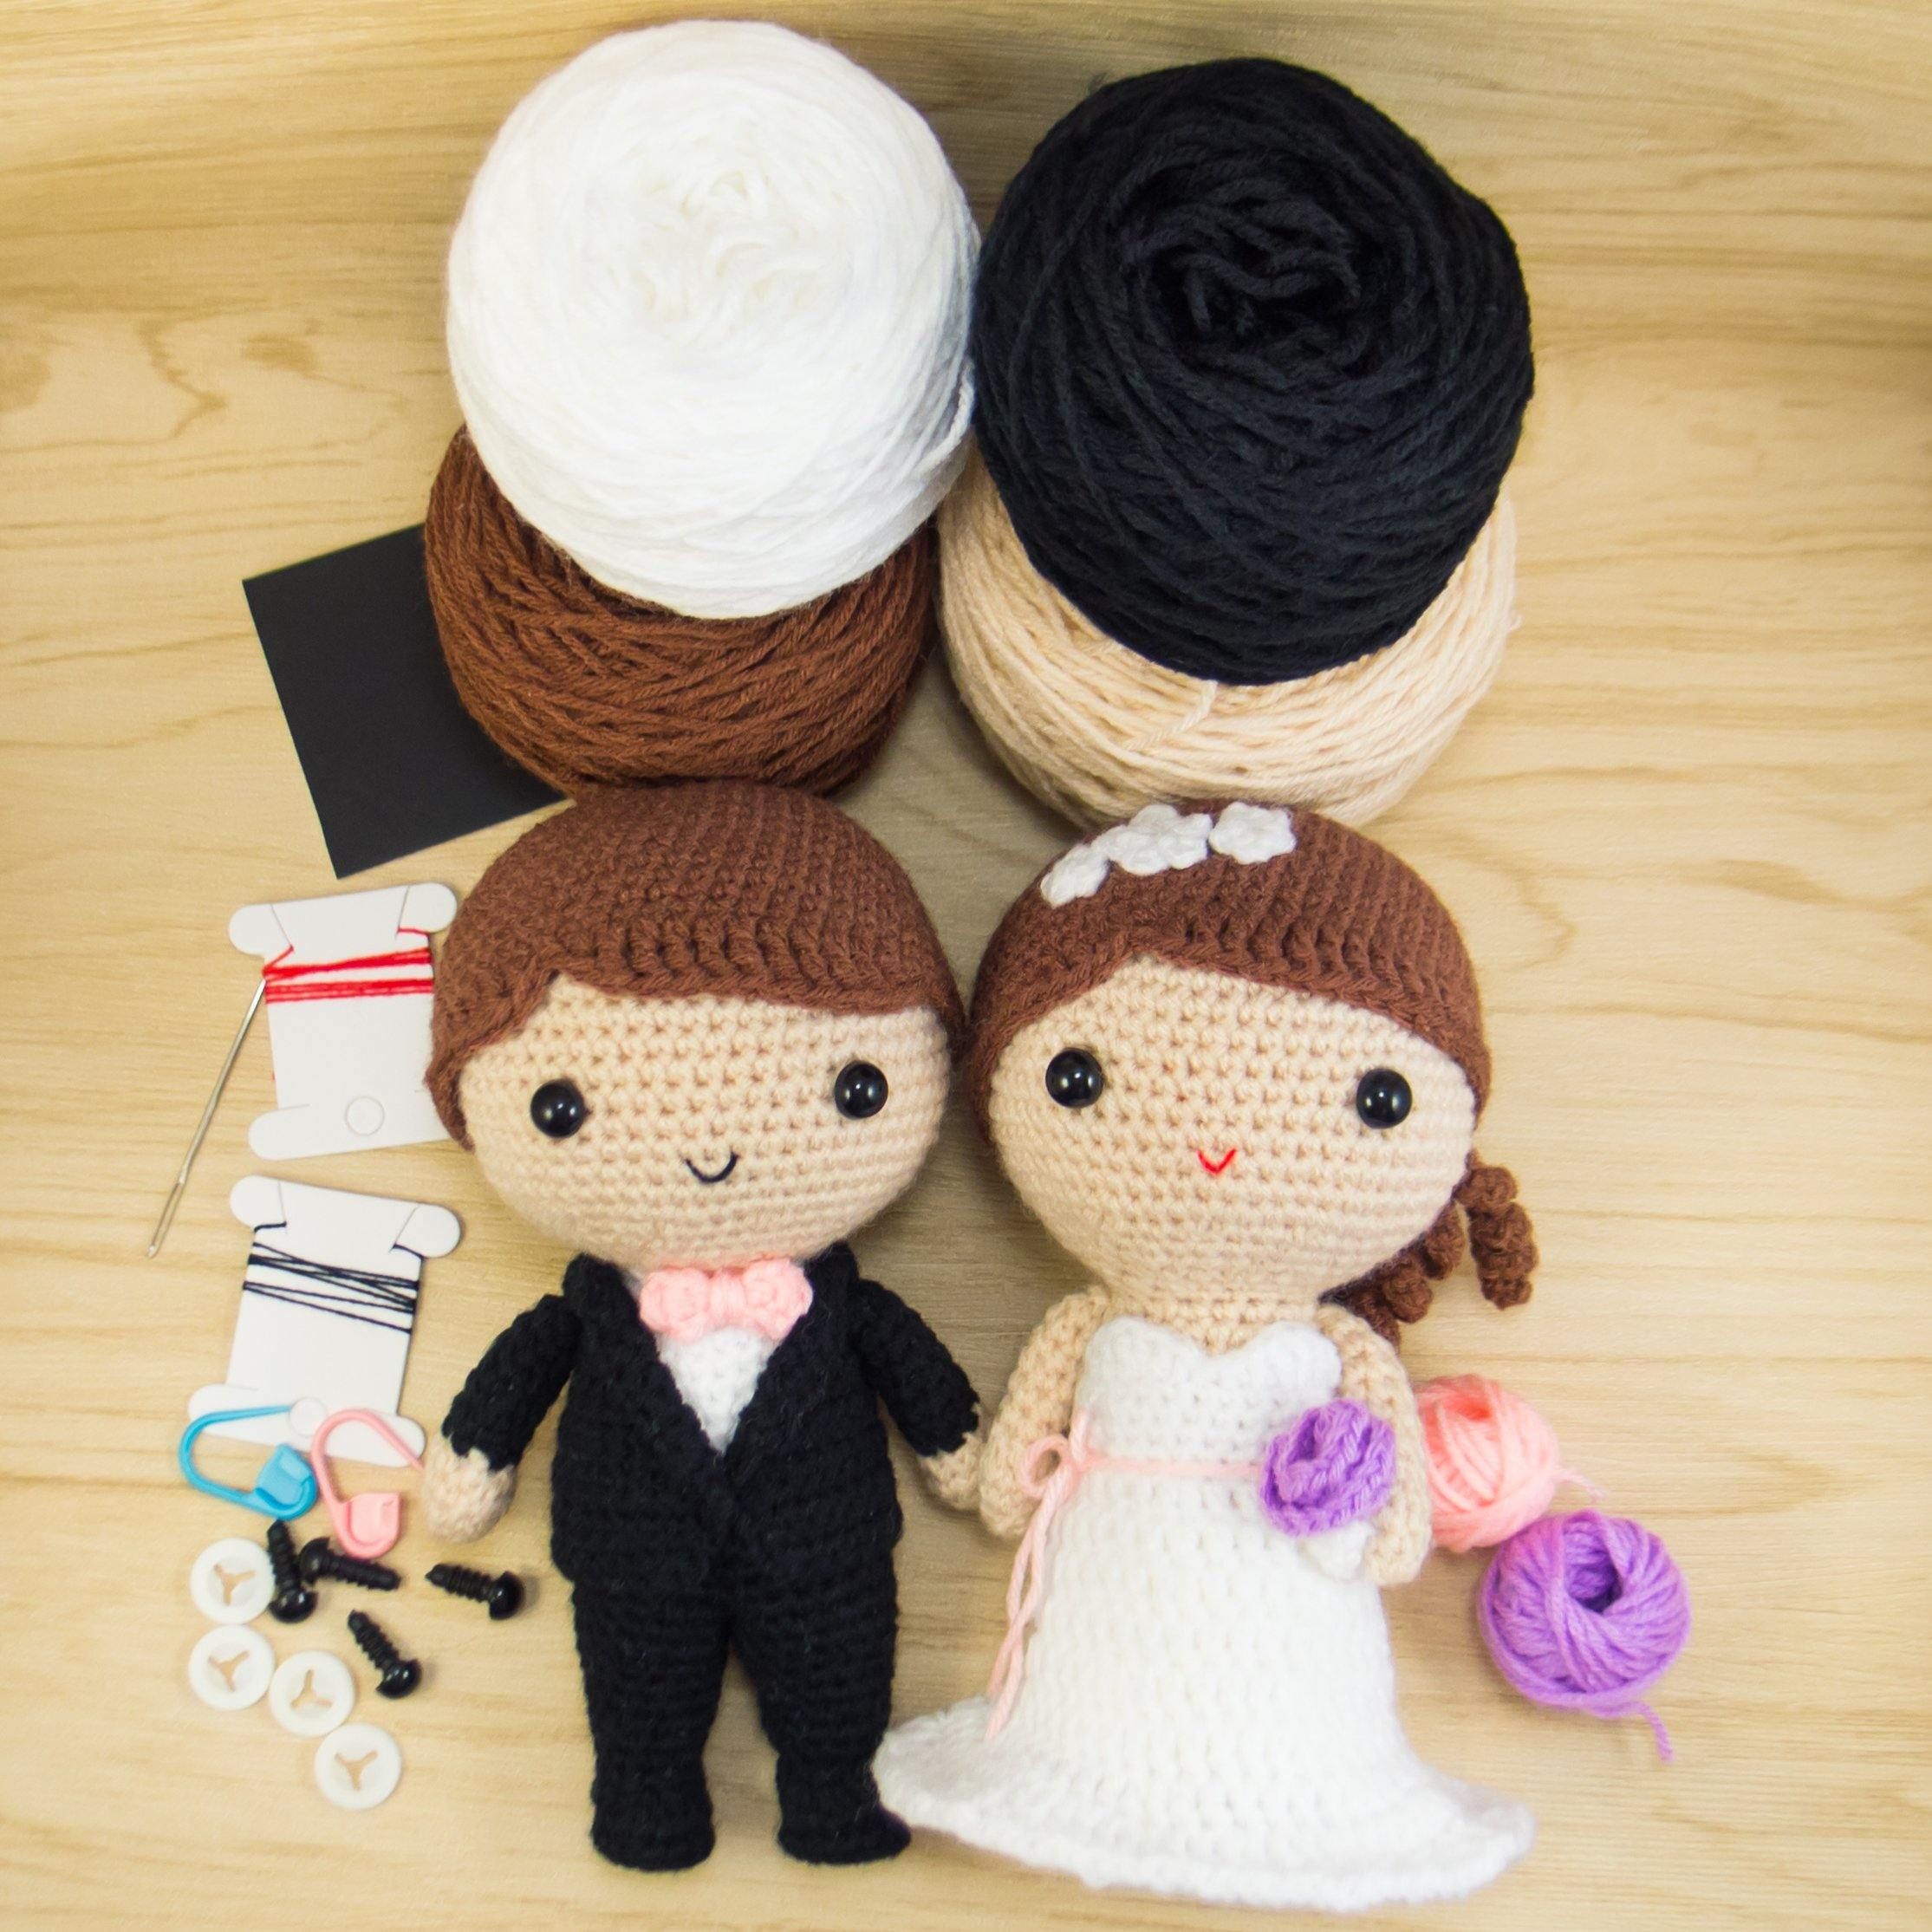 Hobium Amigurumi Elina Doll and Her Outfit Kit | Crochet doll ... | 2229x2229